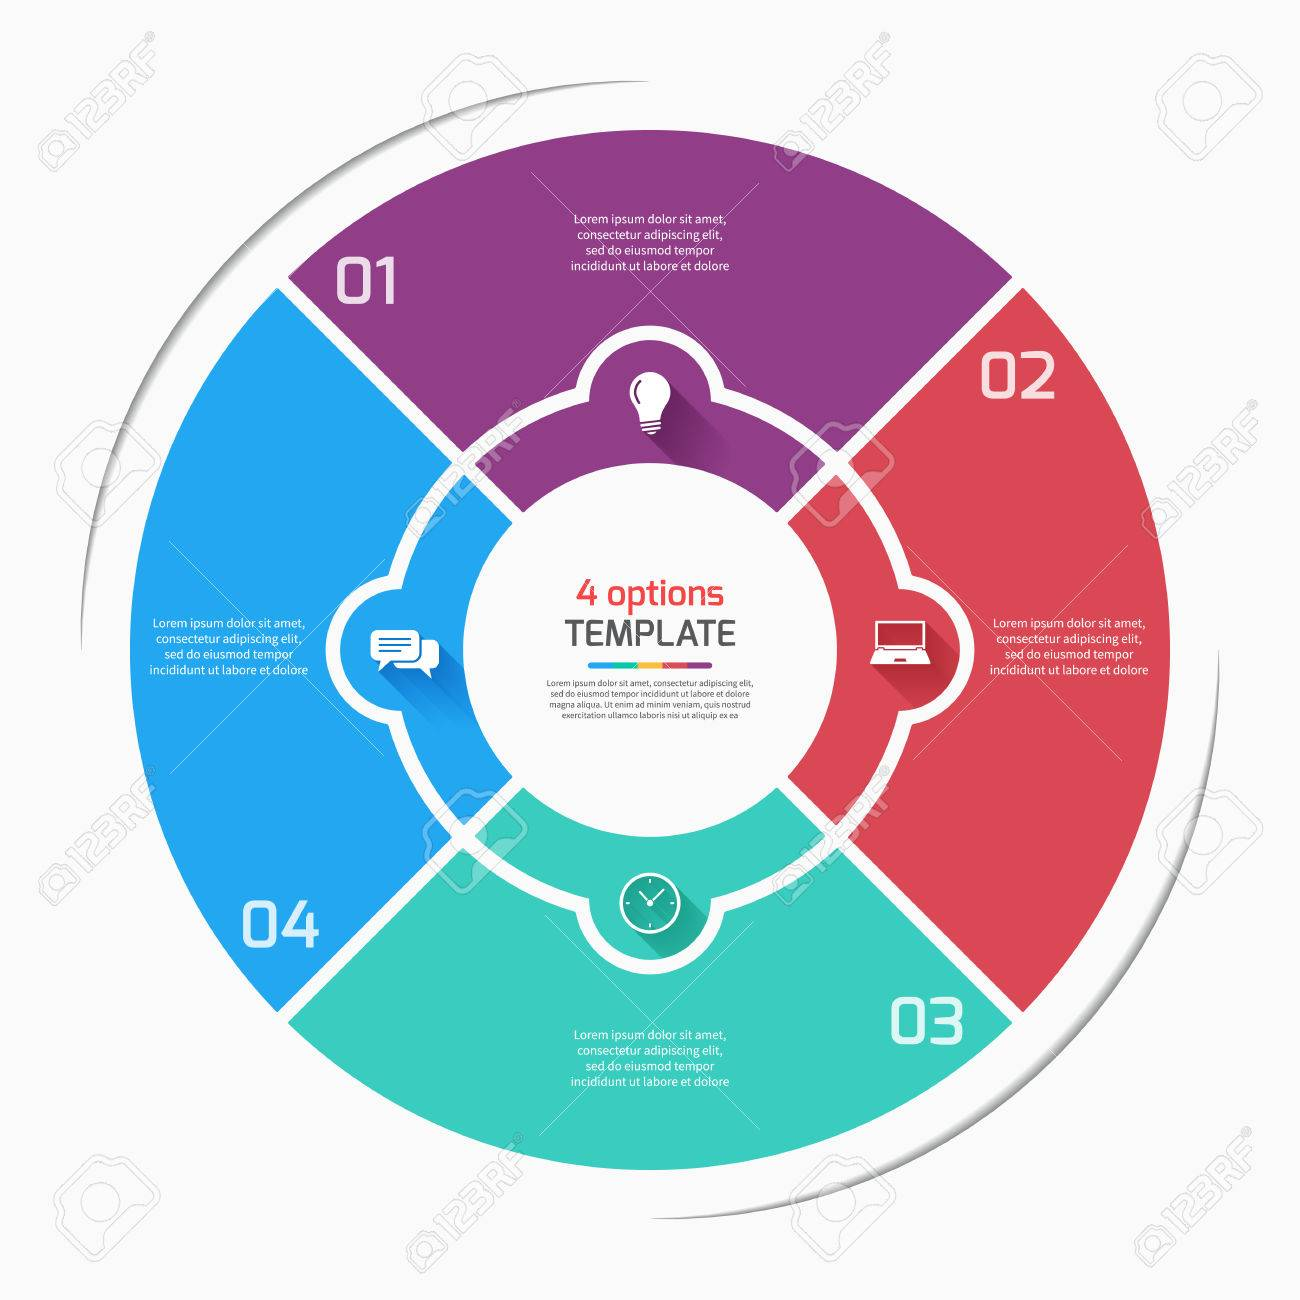 Tax dollar pie chart images free any chart examples tax dollar pie chart gallery free any chart examples tax dollar pie chart gallery free any nvjuhfo Gallery